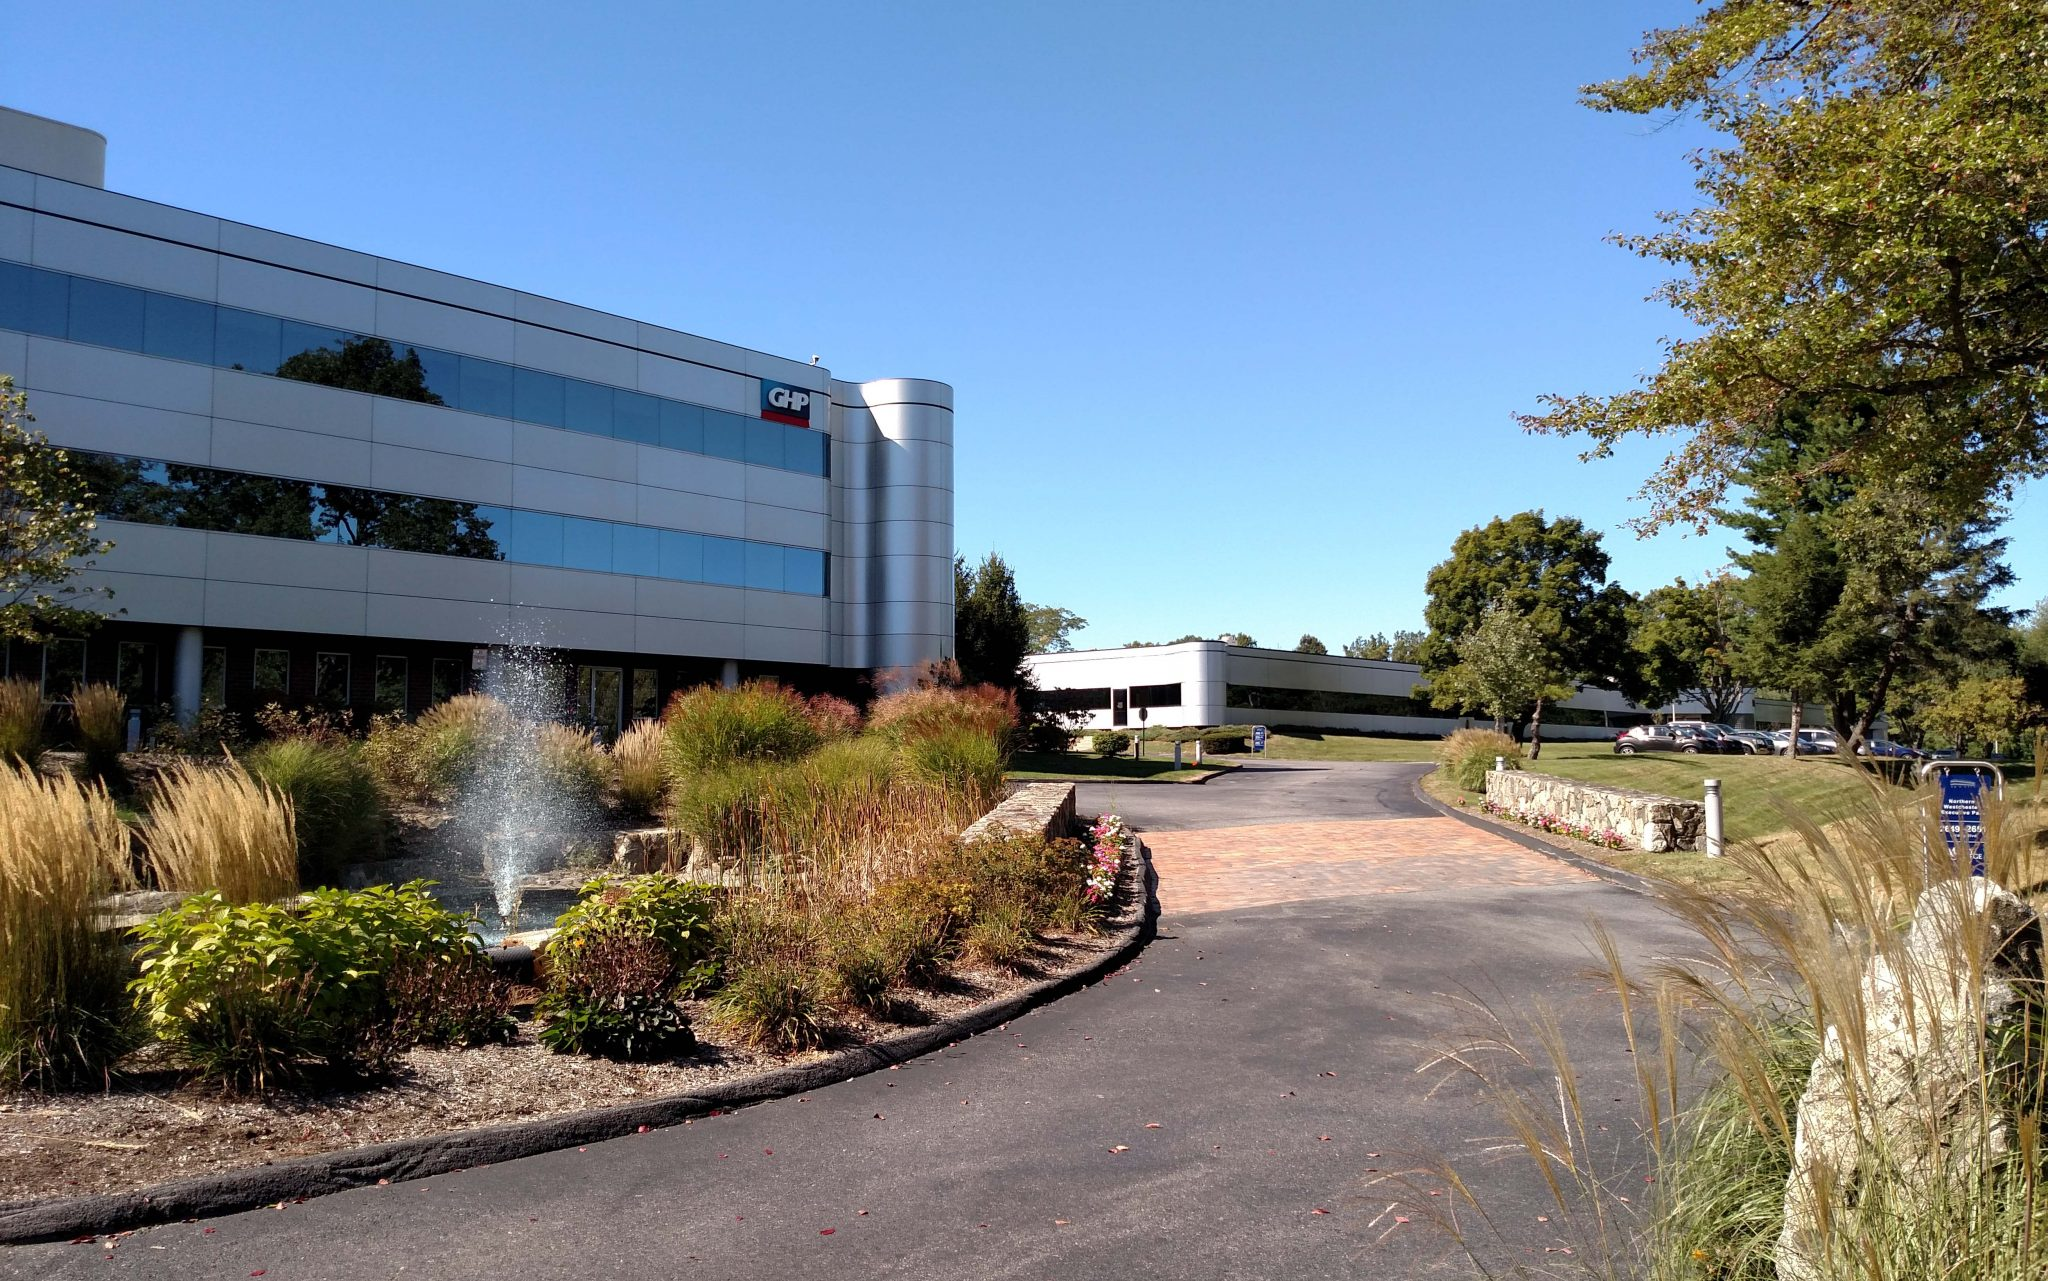 2651 Strang Boulevard – Yorktown Heights, NY 10598 – 52,000 sq. ft.